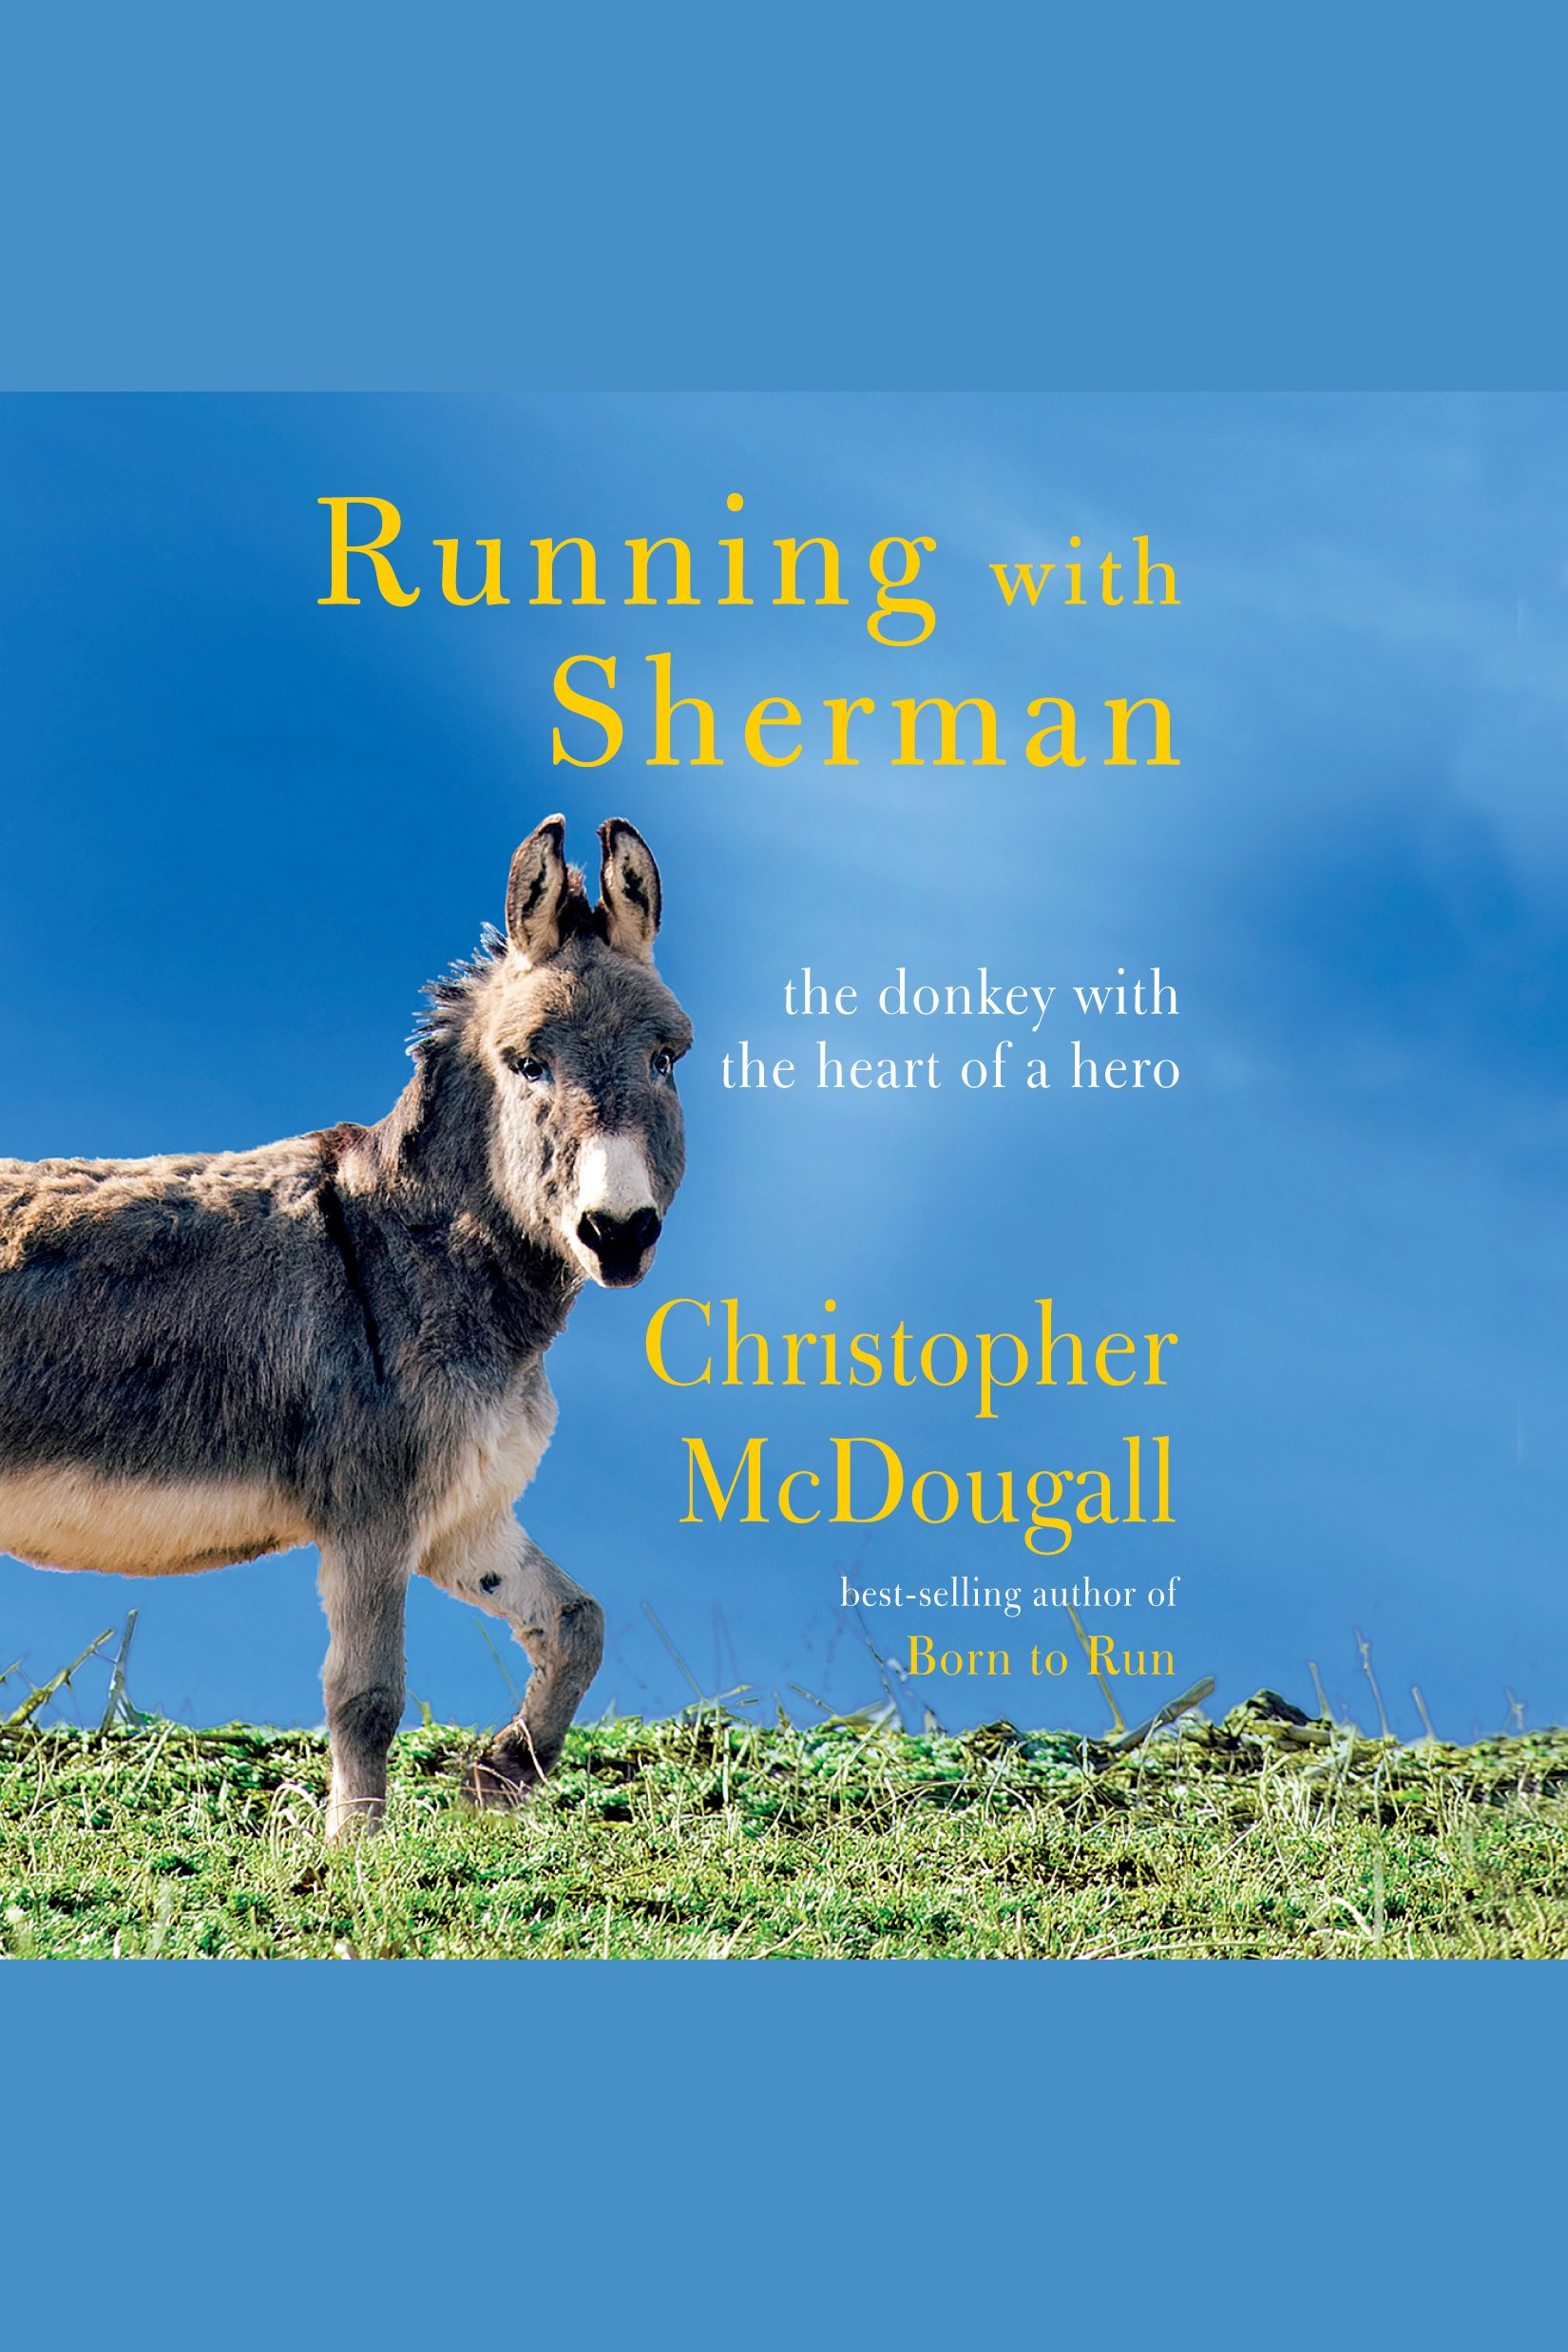 Running with Sherman [electronic resource] : The Donkey with the Heart of a Hero